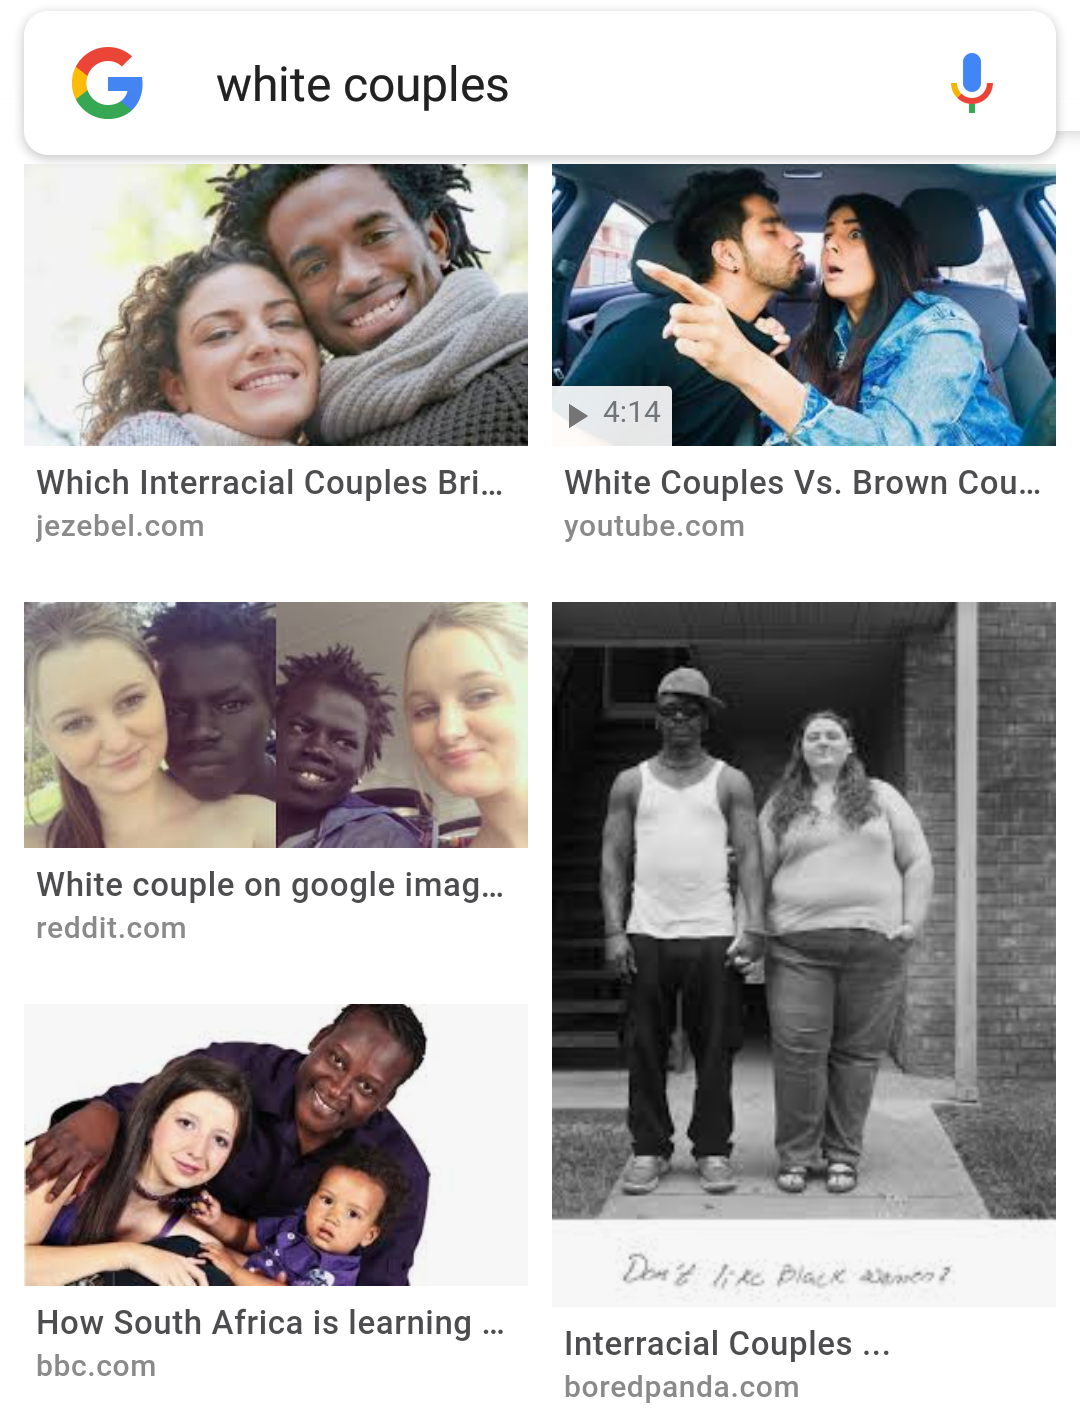 interracial dating social experiment